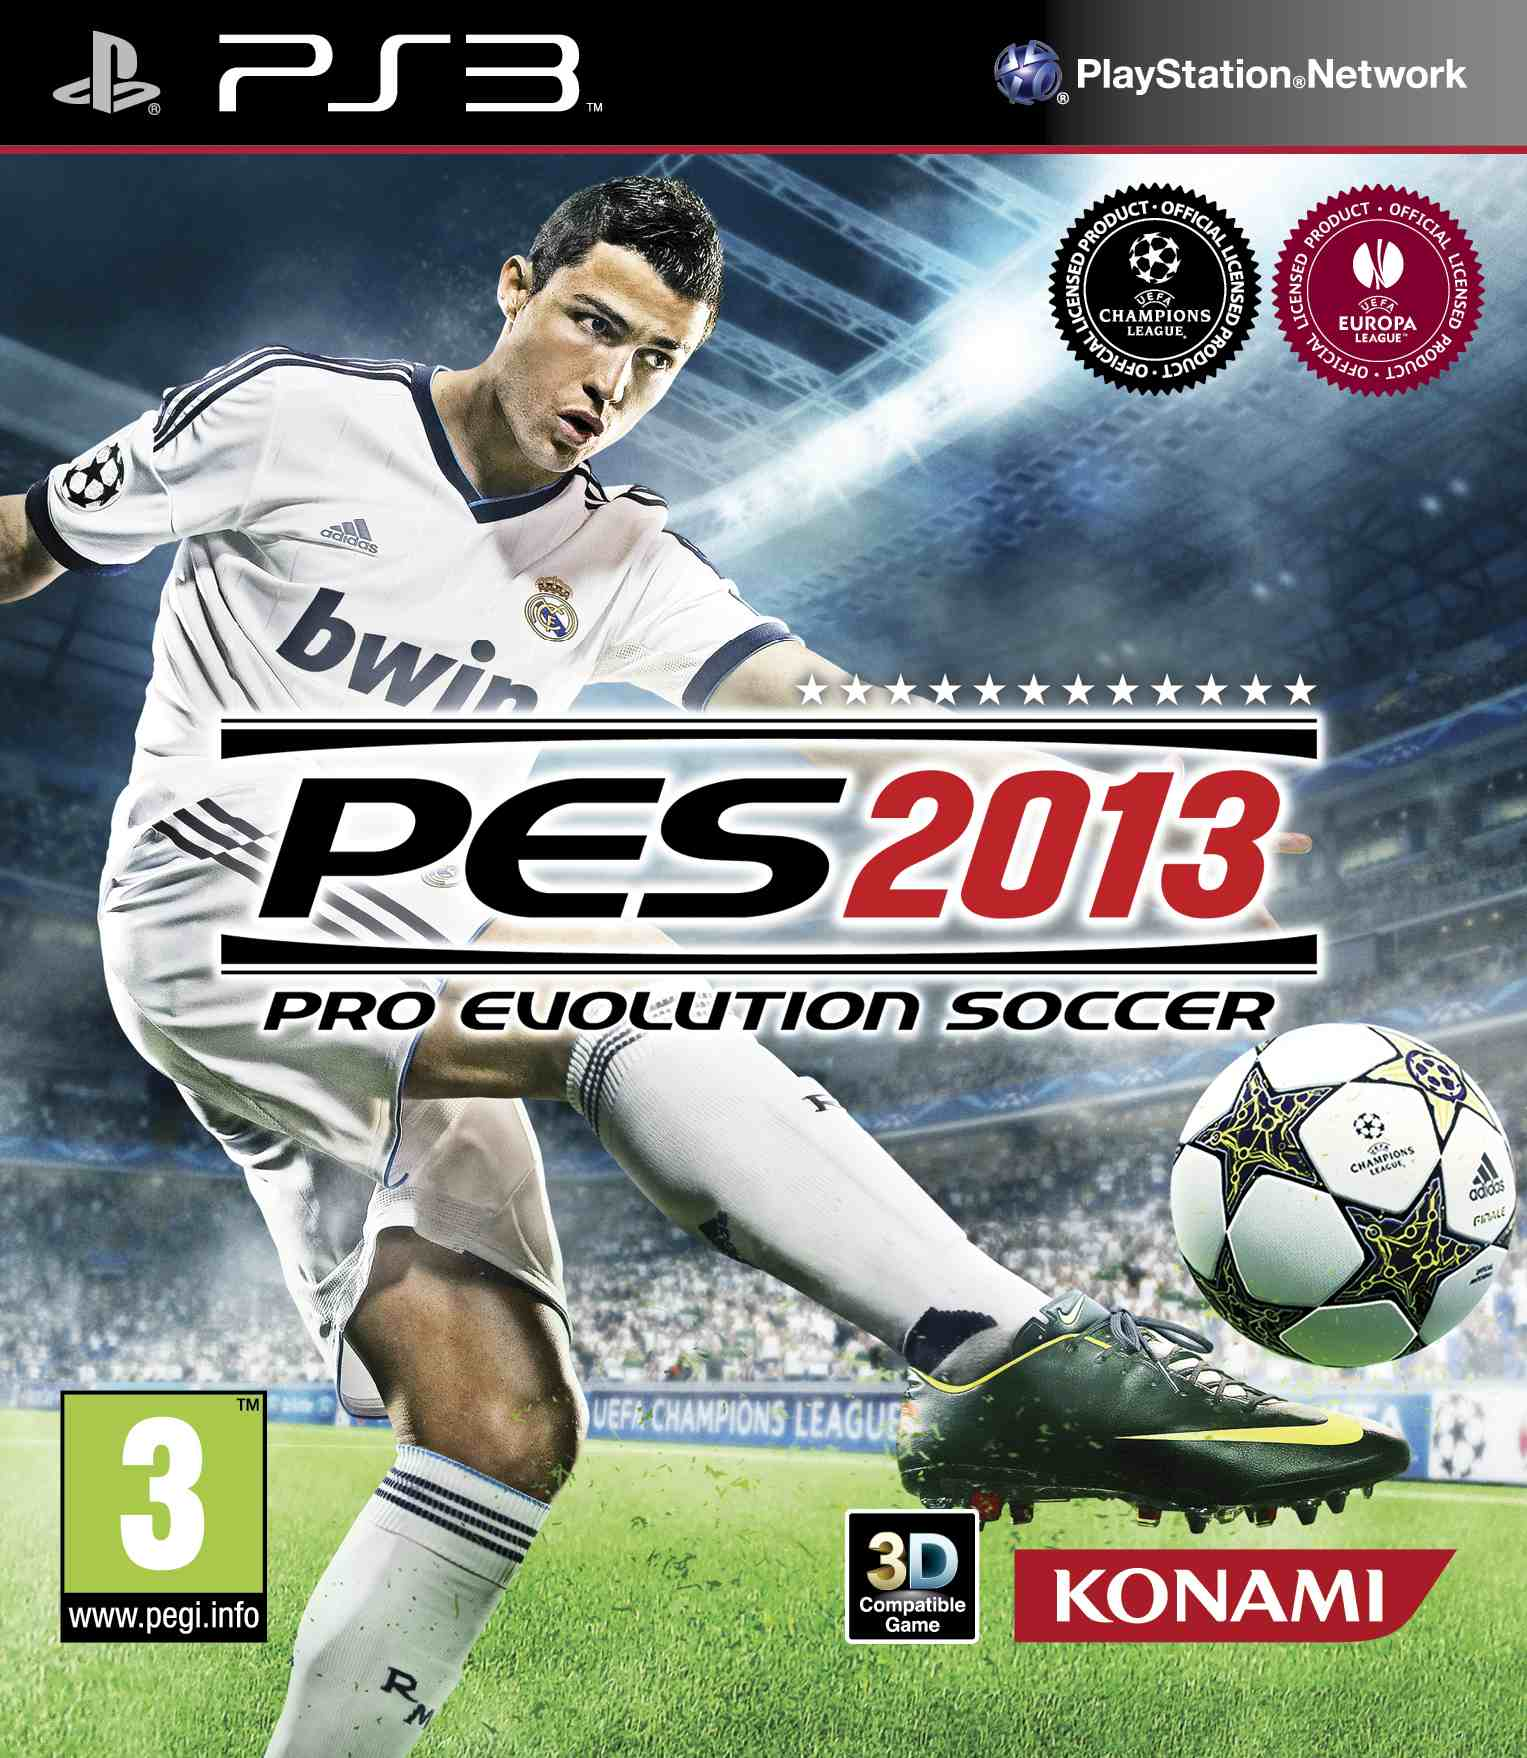 PES 2013 Scores an equalizer